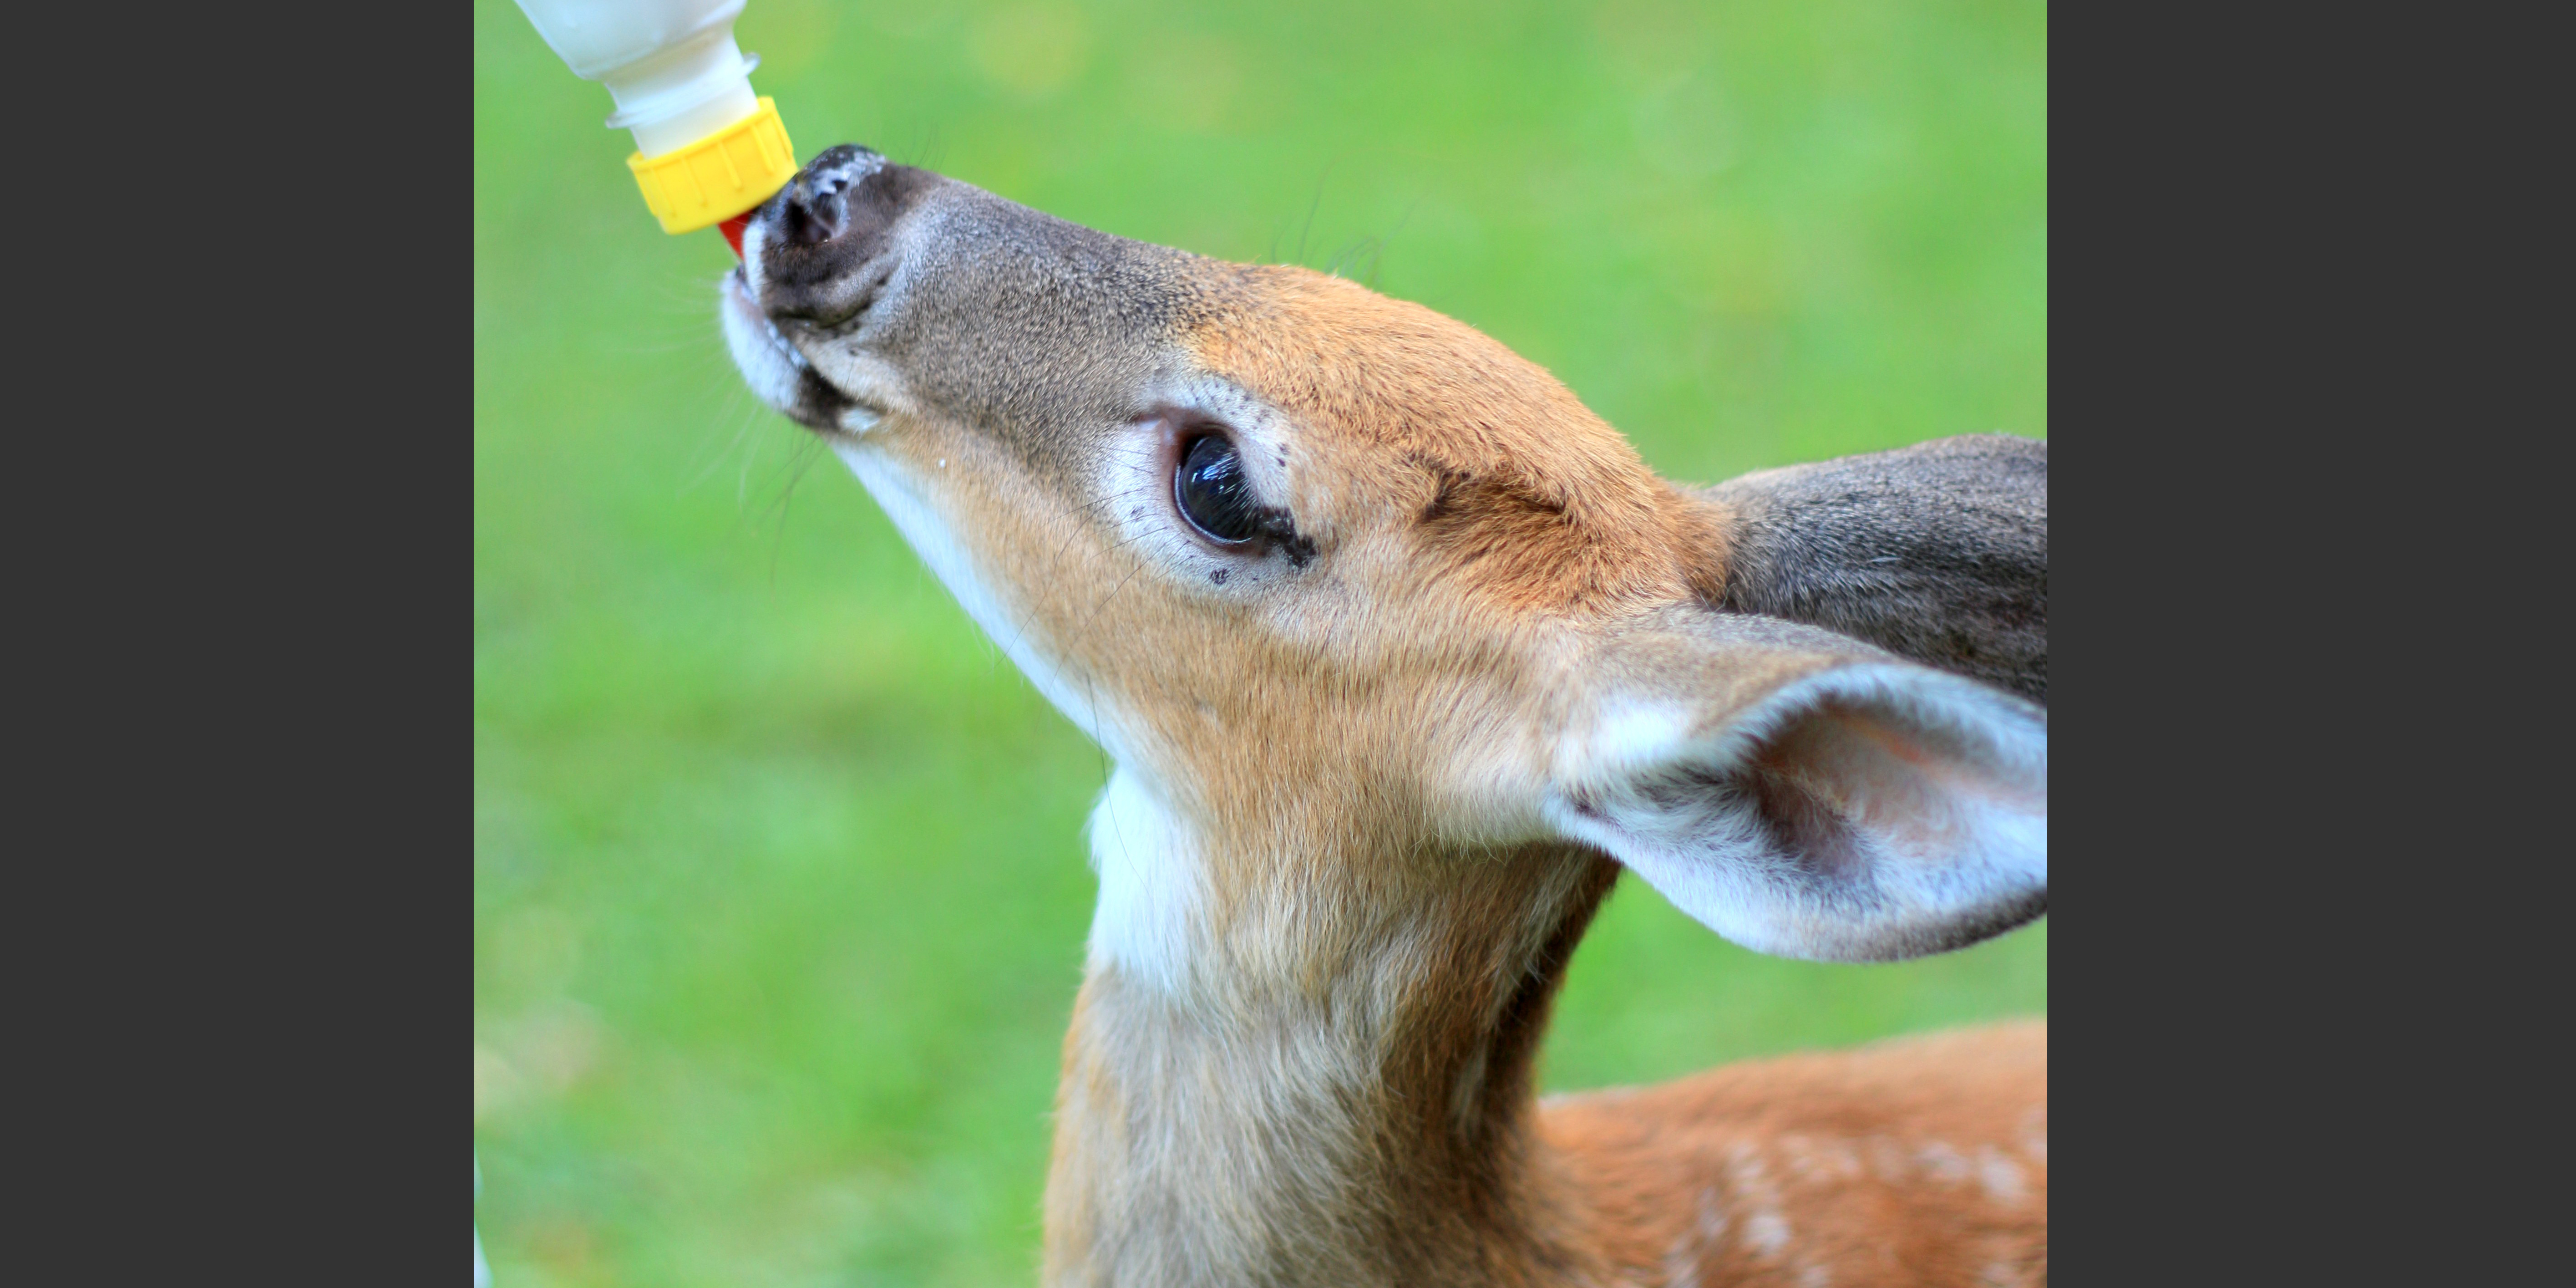 White-tailed deer fawn feeding from a bottler in rehab